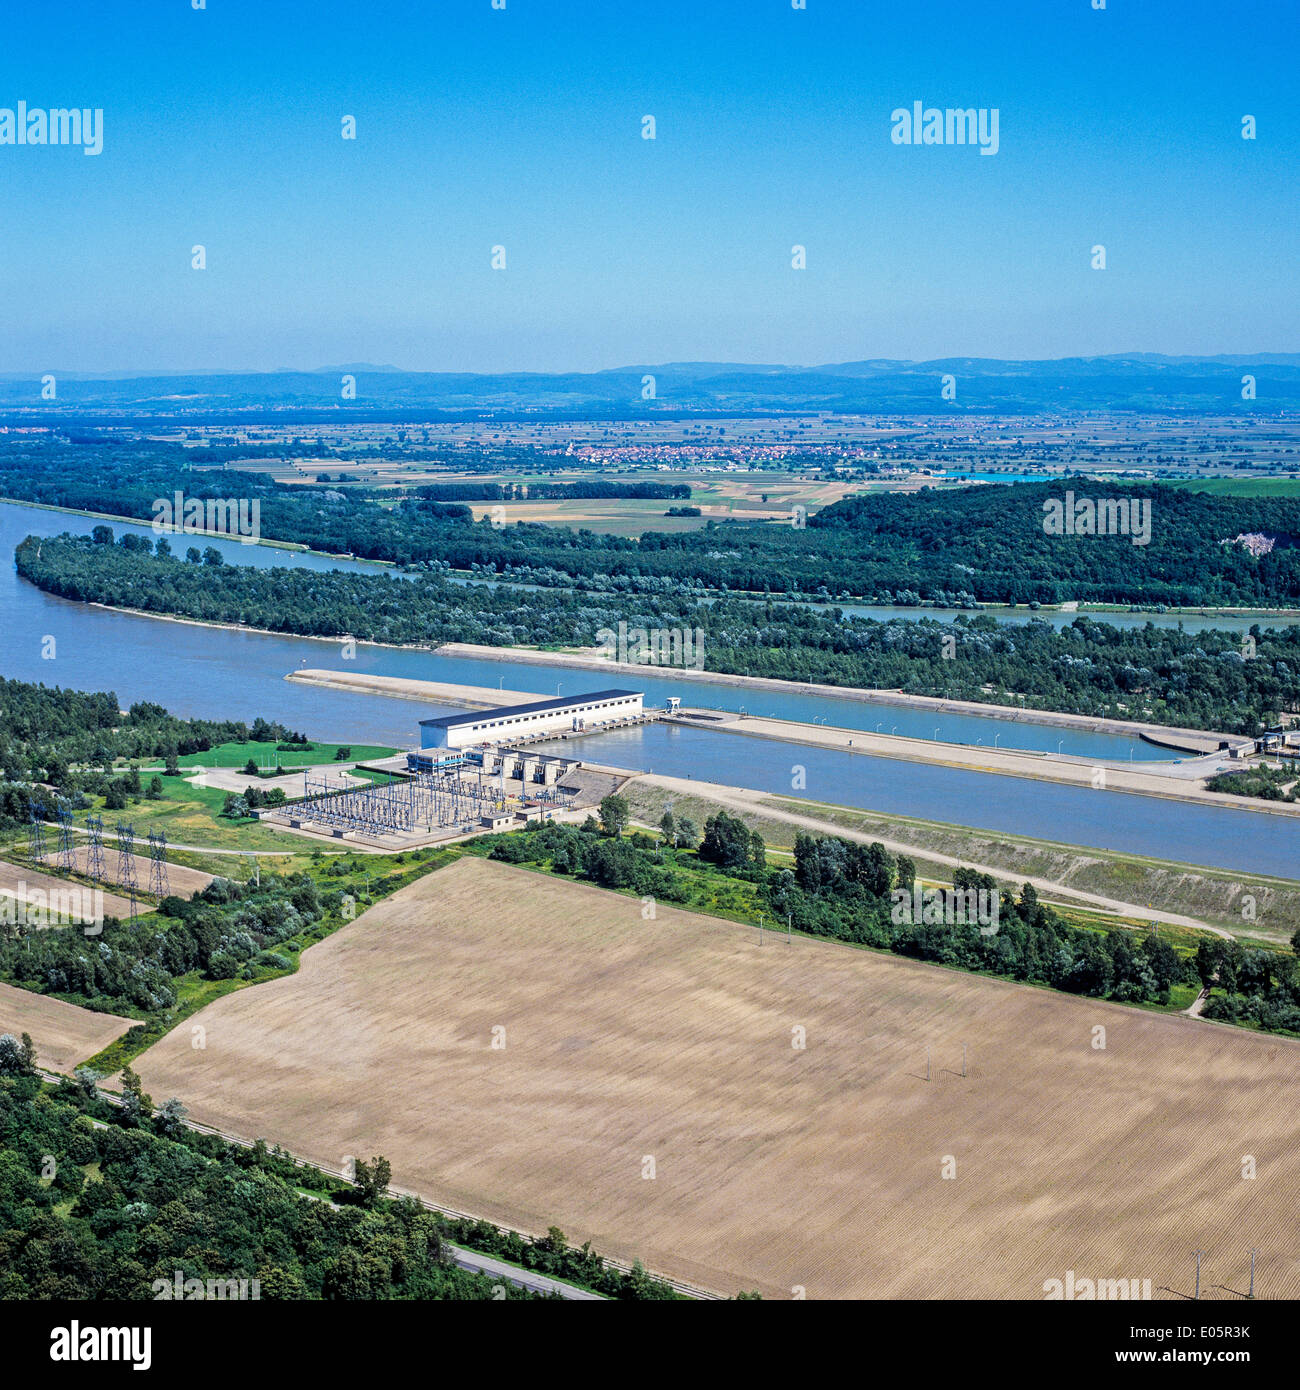 Aerial view of Marckolsheim hydroelectric power station and dam on Rhine river Alsace France - Stock Image